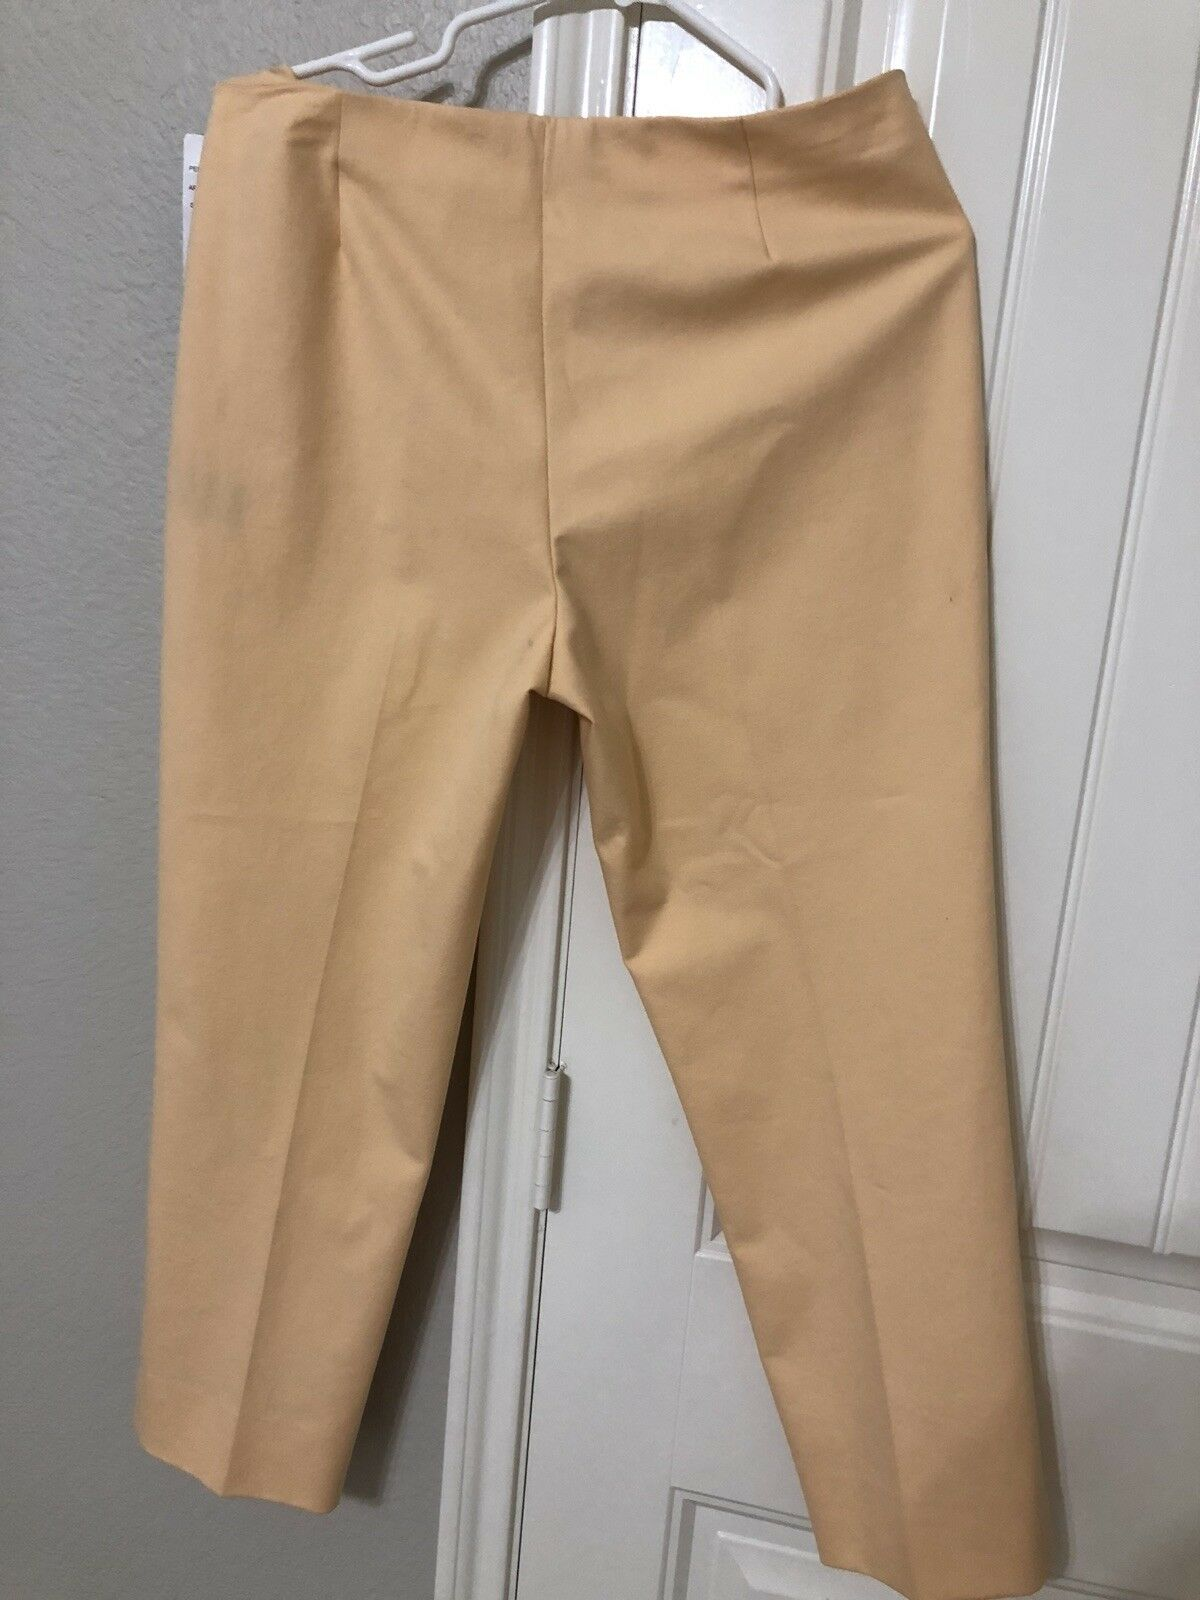 Lafayette 148  cropped pants sz 8 new with tags